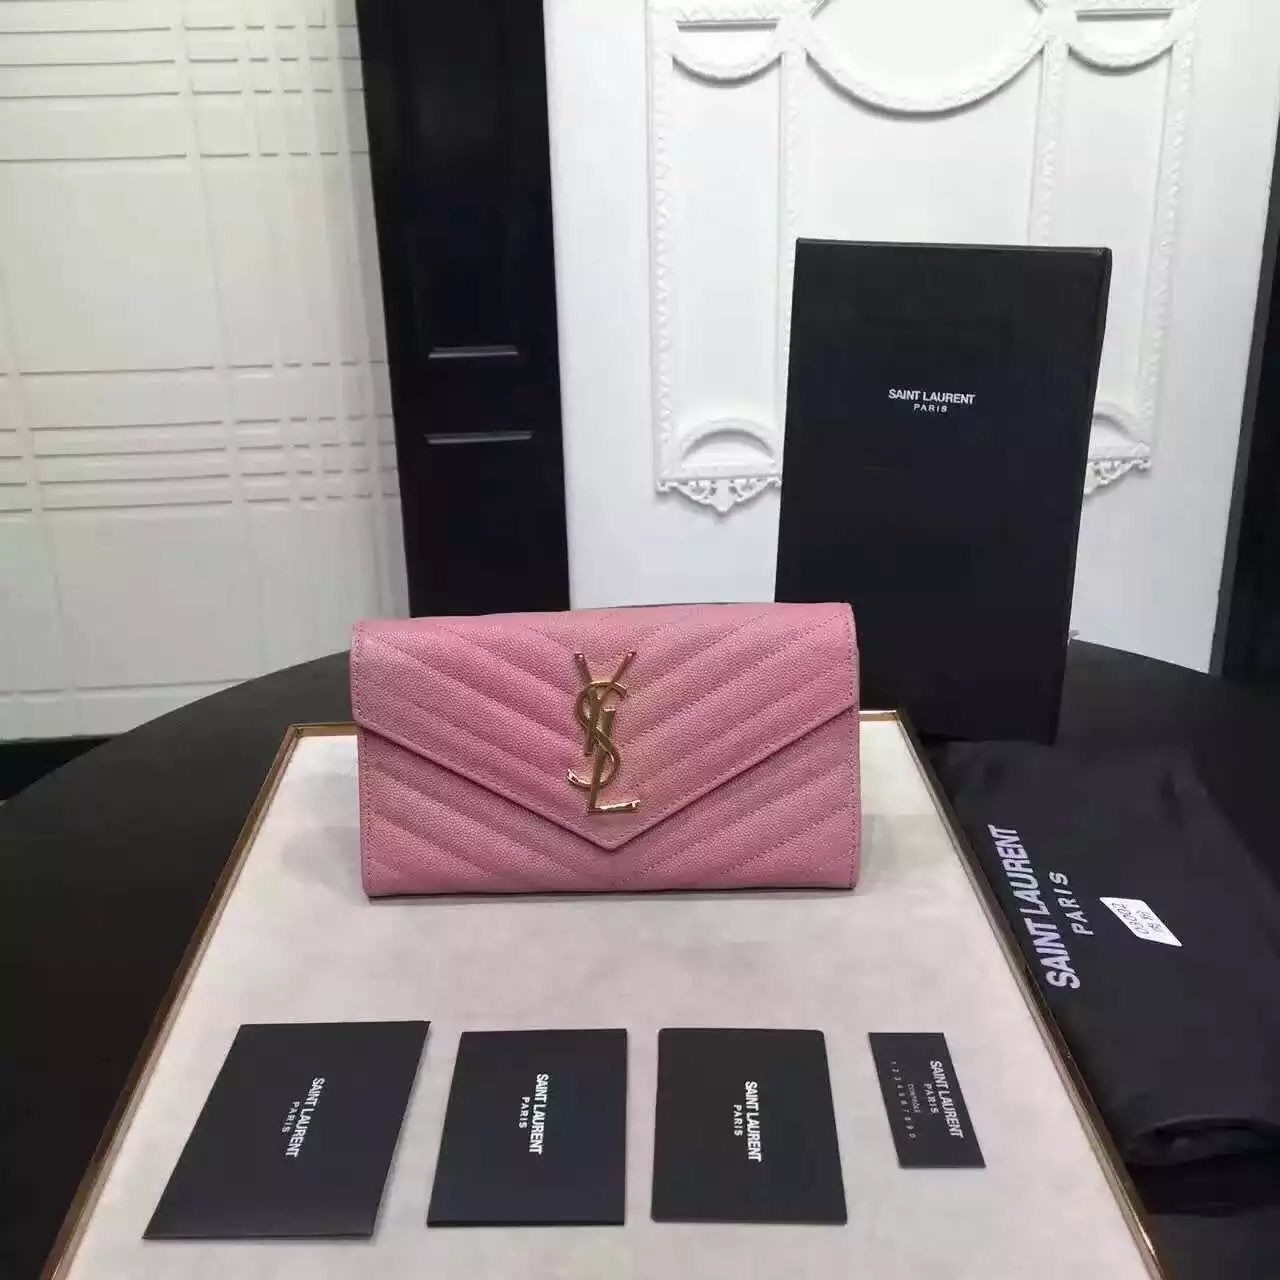 9882d58474b 2016 Cheap YSL Out Sale with Free Shipping-Saint Laurent Large Monogram  Flap Wallet in